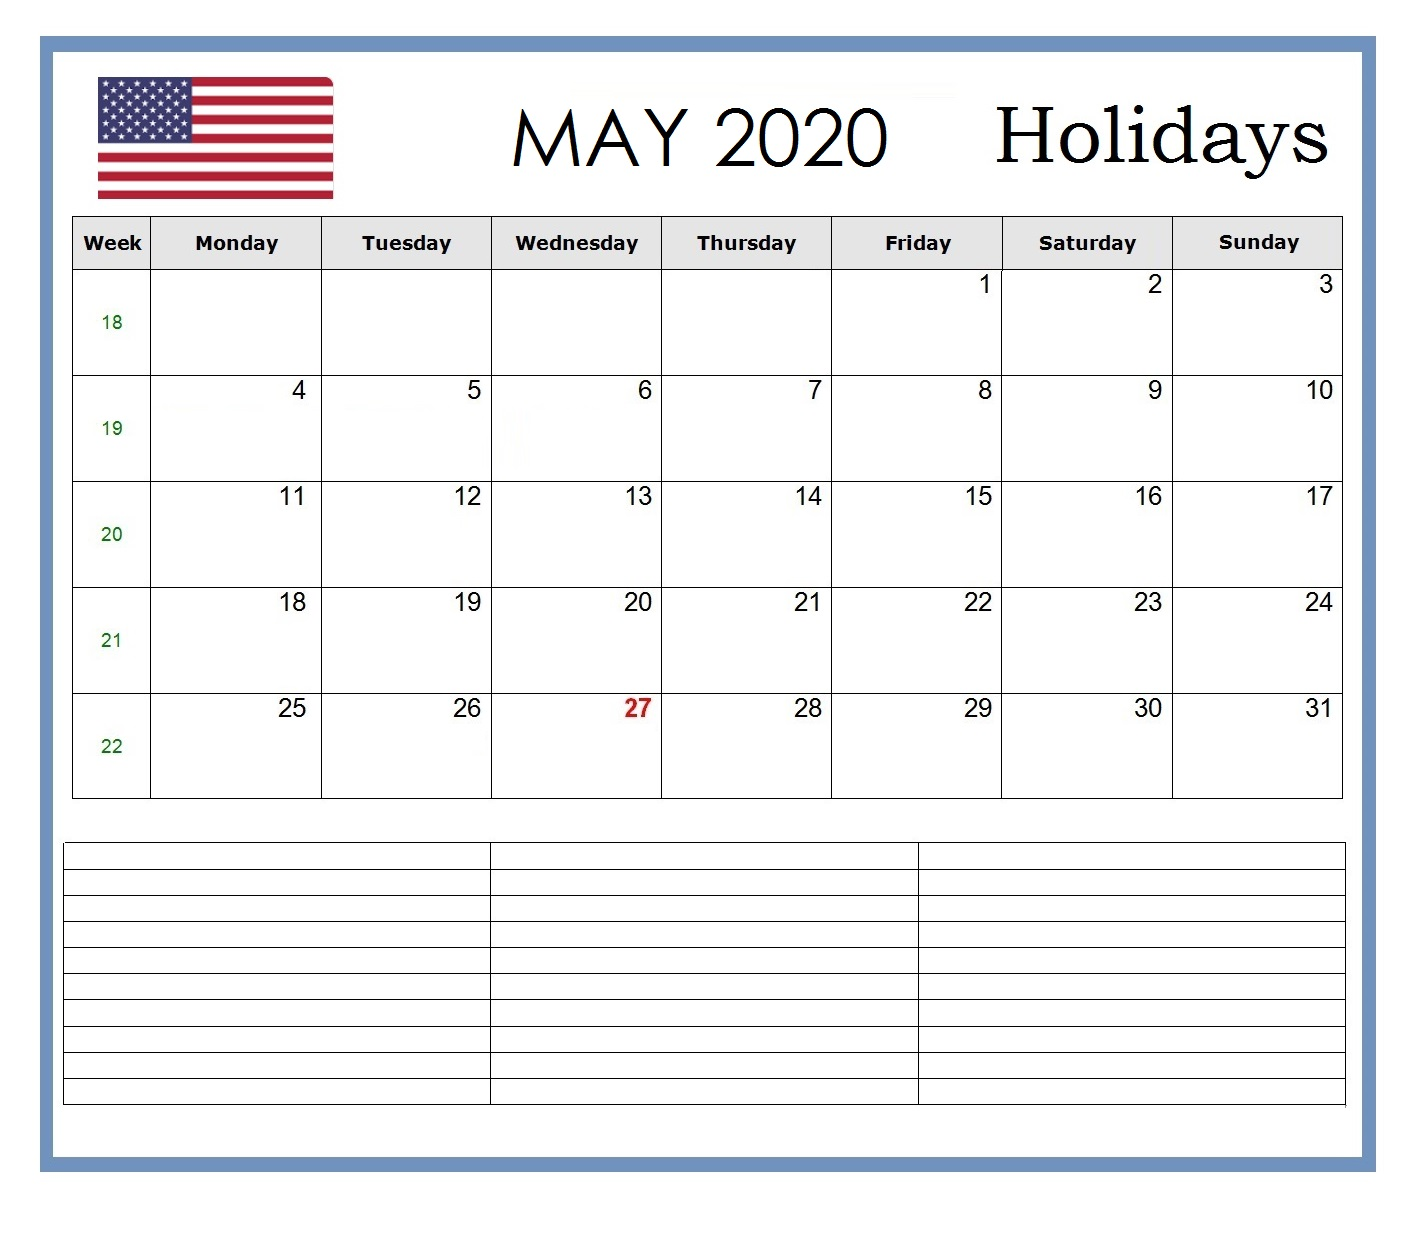 May 2020 Calendar with Holidays USA